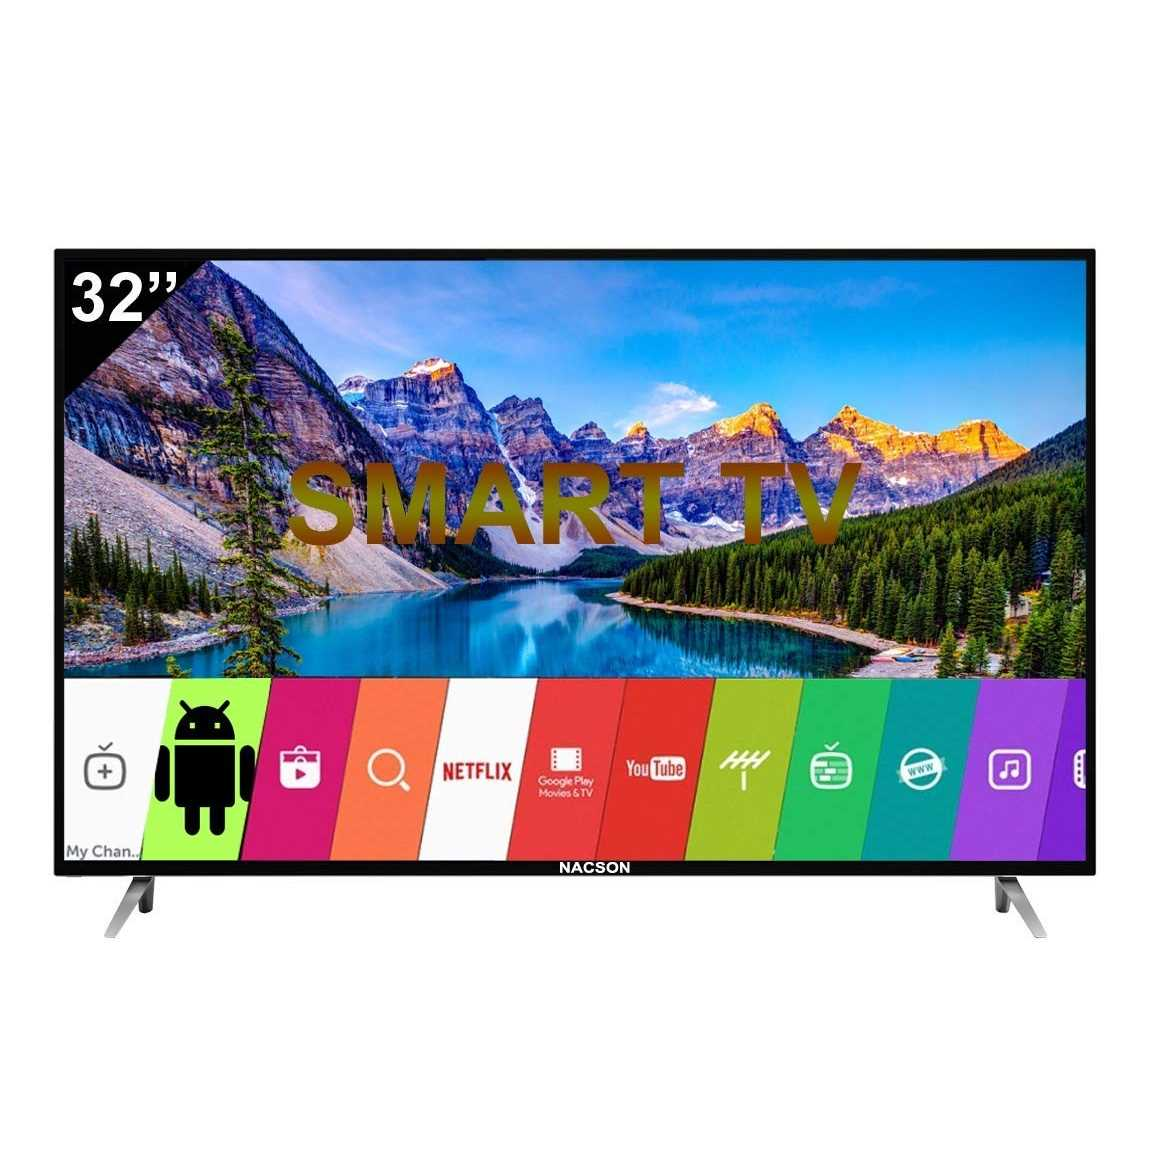 Nascon NS32M Pro 32 Inch HD Ready Smart LED Television